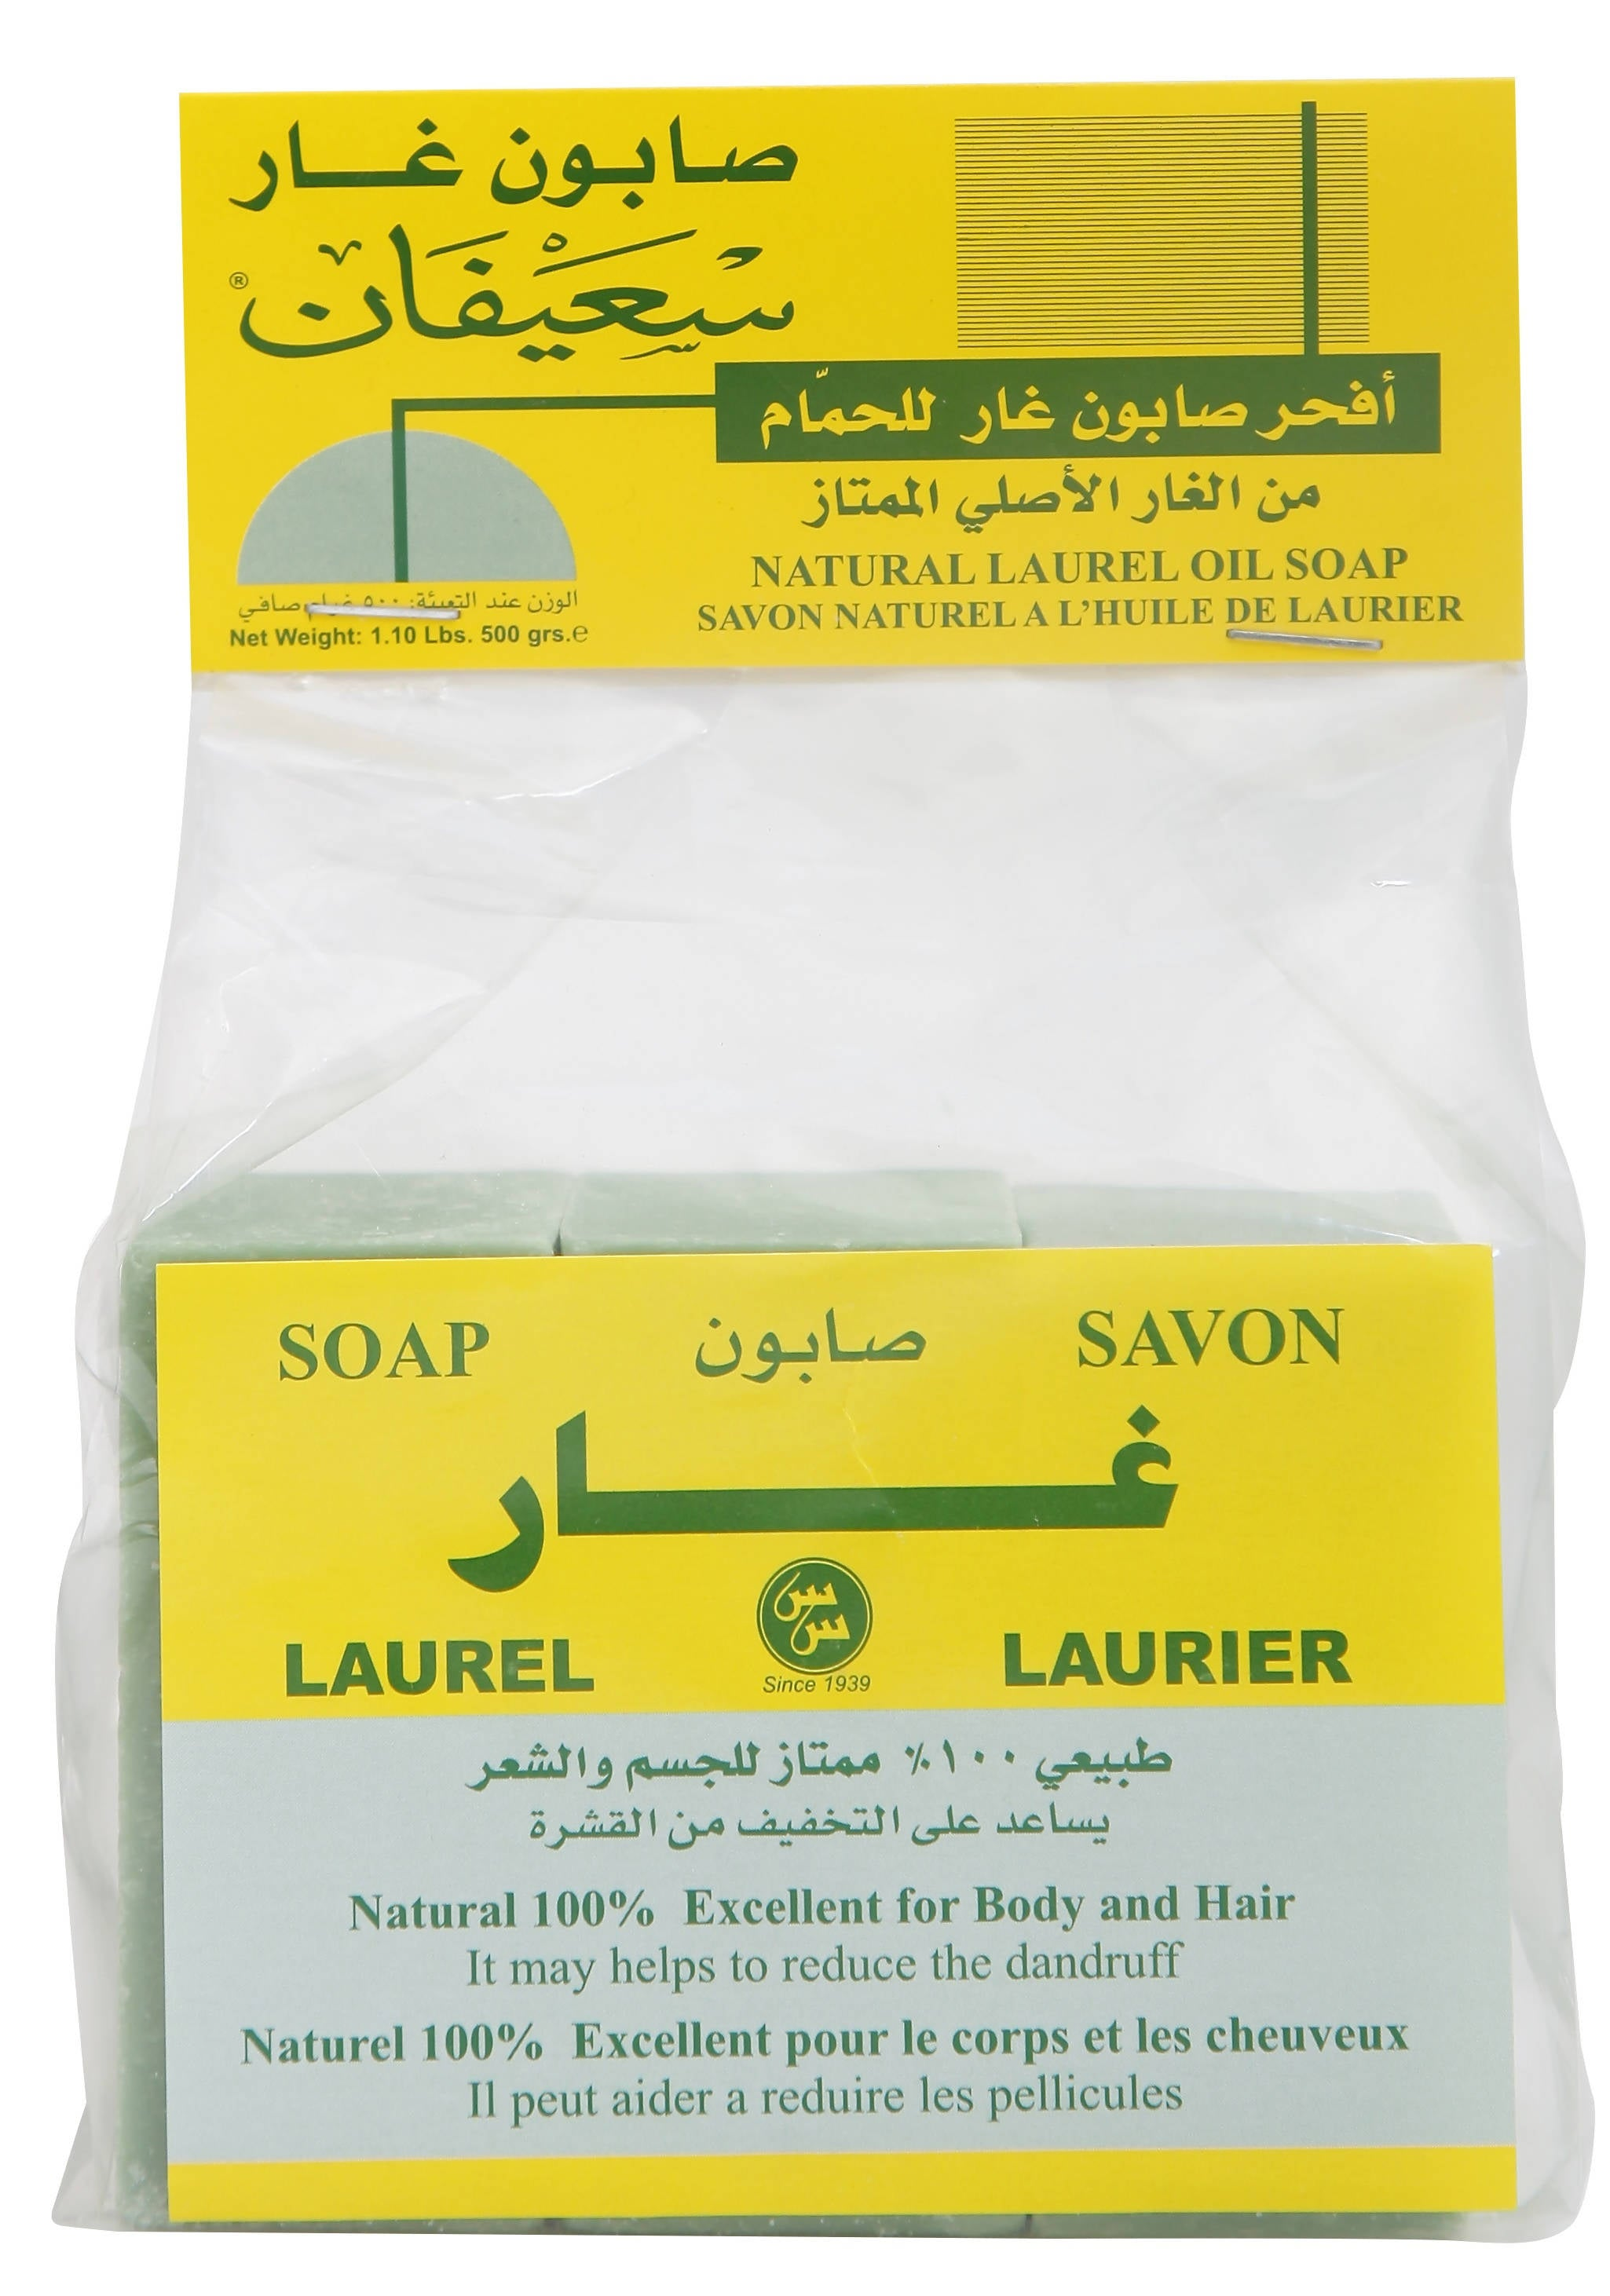 saifan 100% natural laurel (ghar) olive oil soap 500 grs